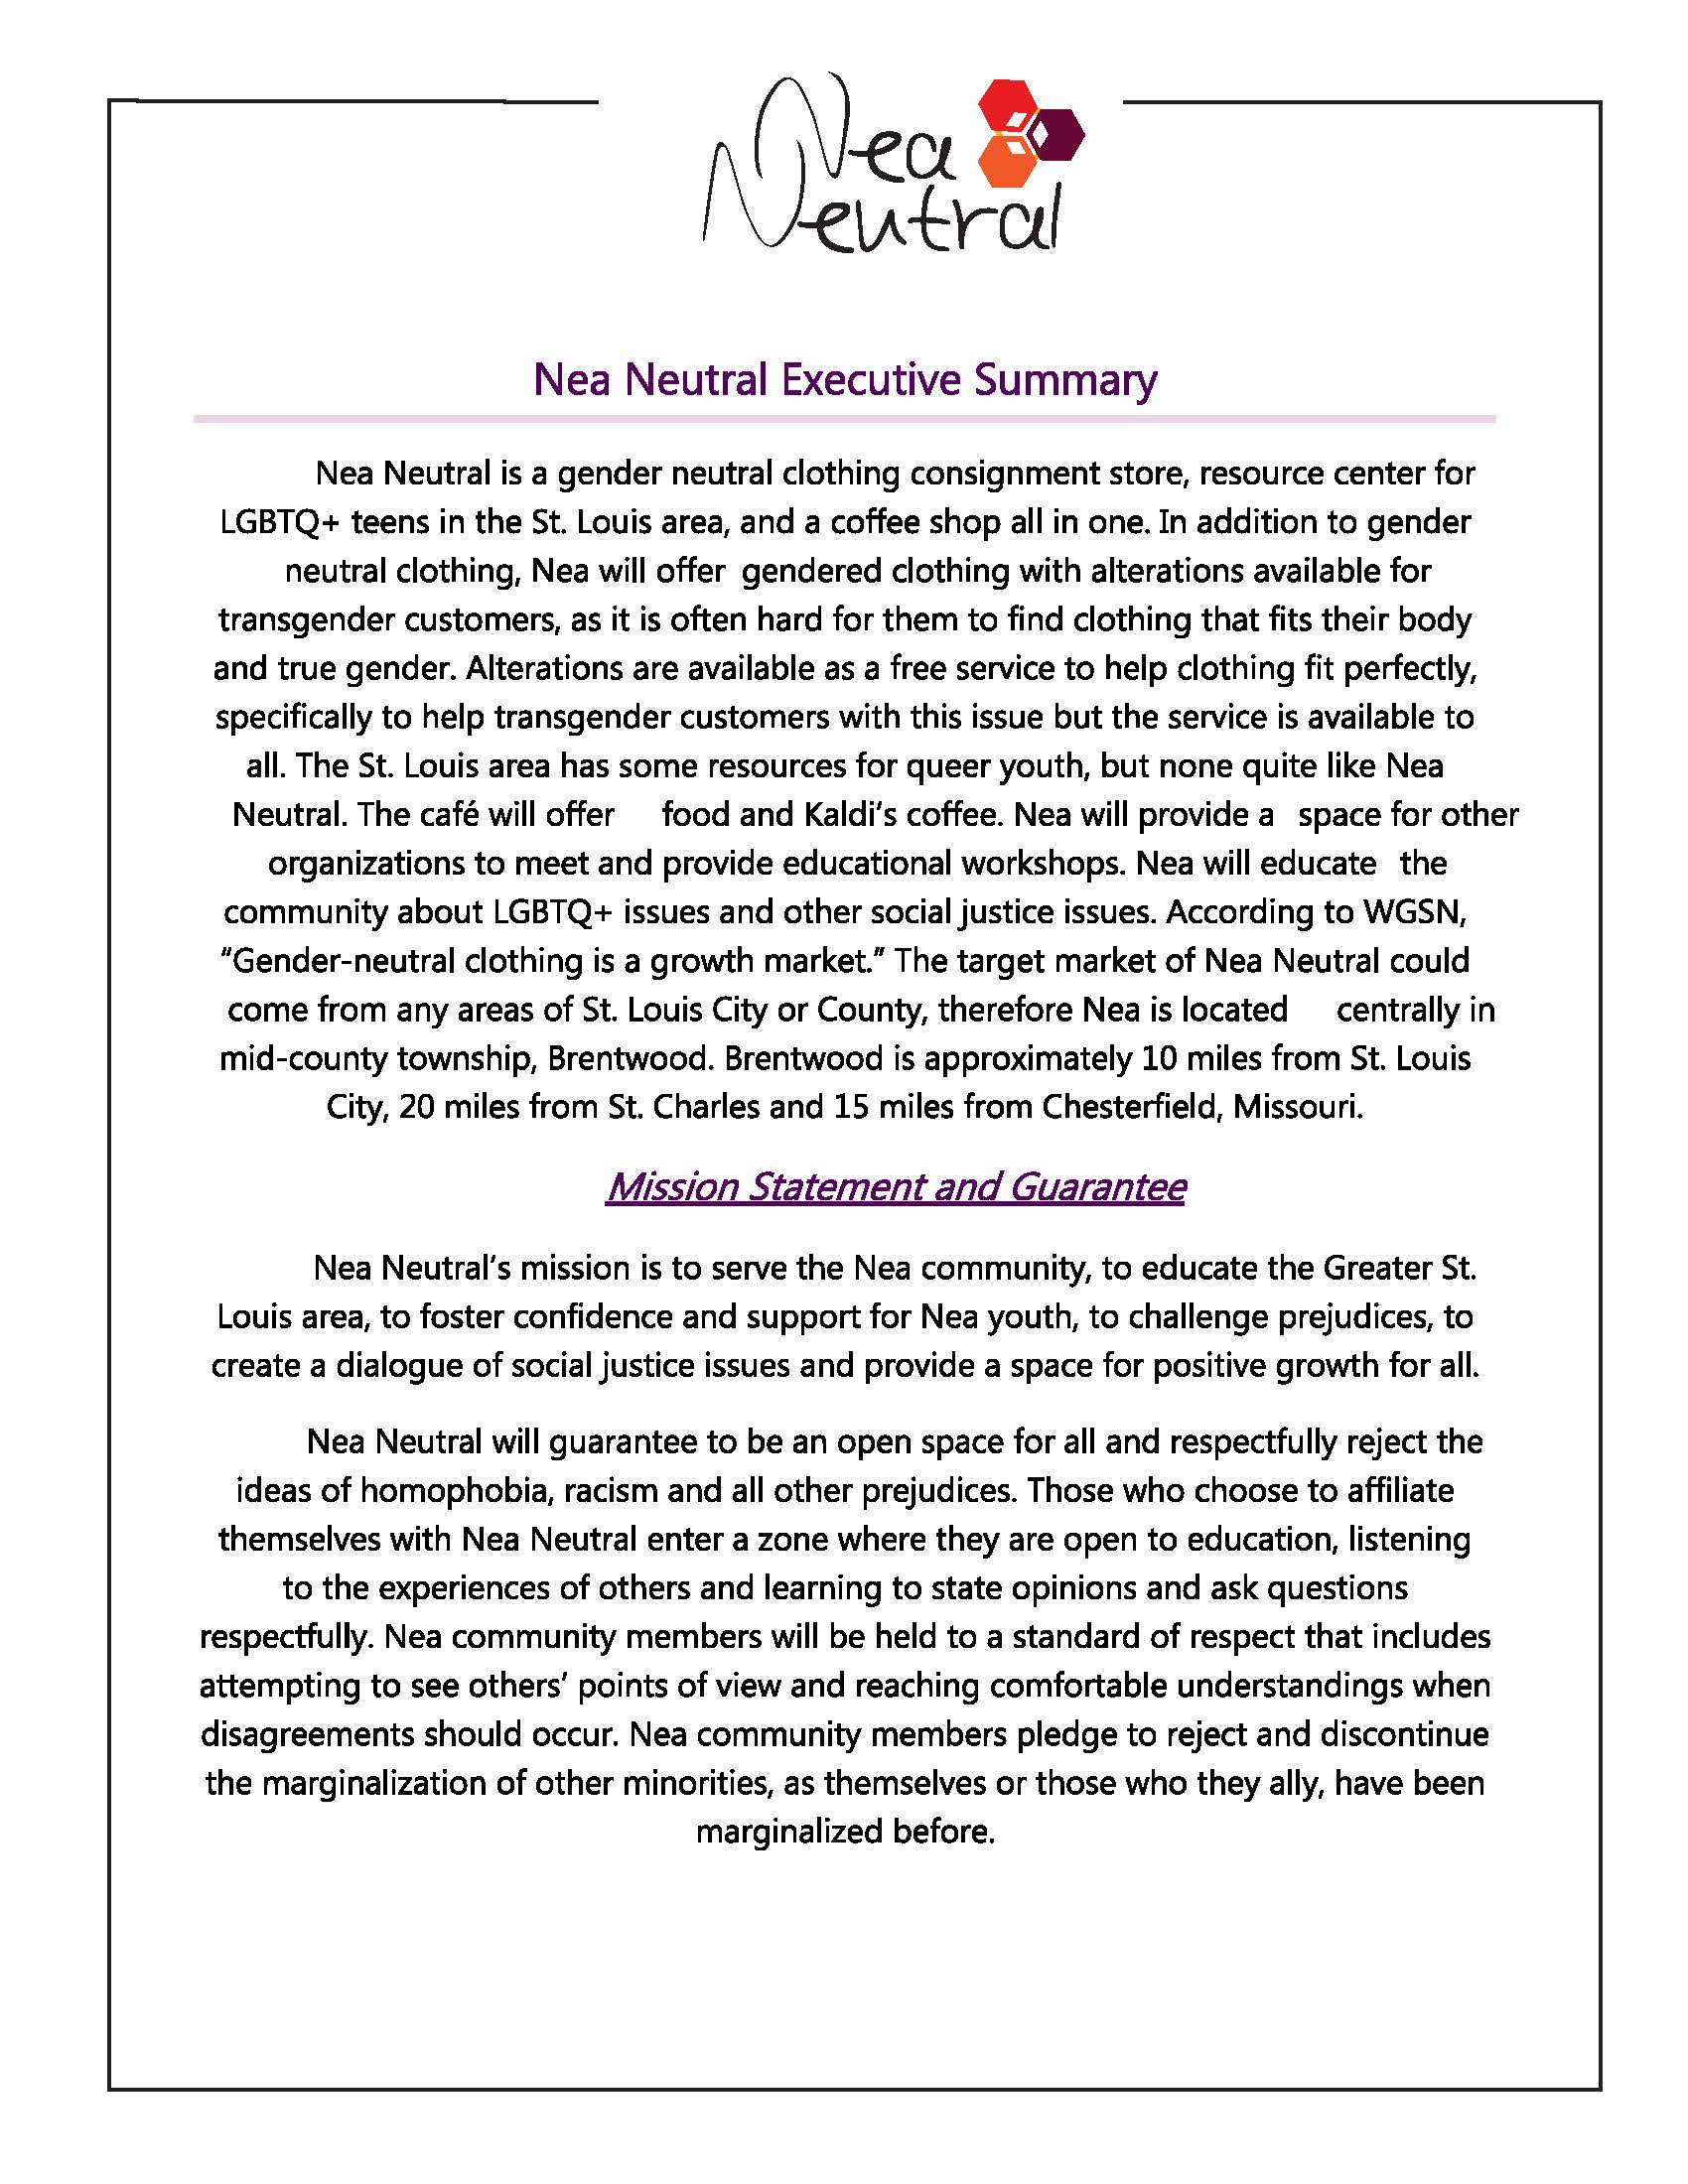 Nea Neutral Executive Summary and Mission Statement_Page_5.jpg